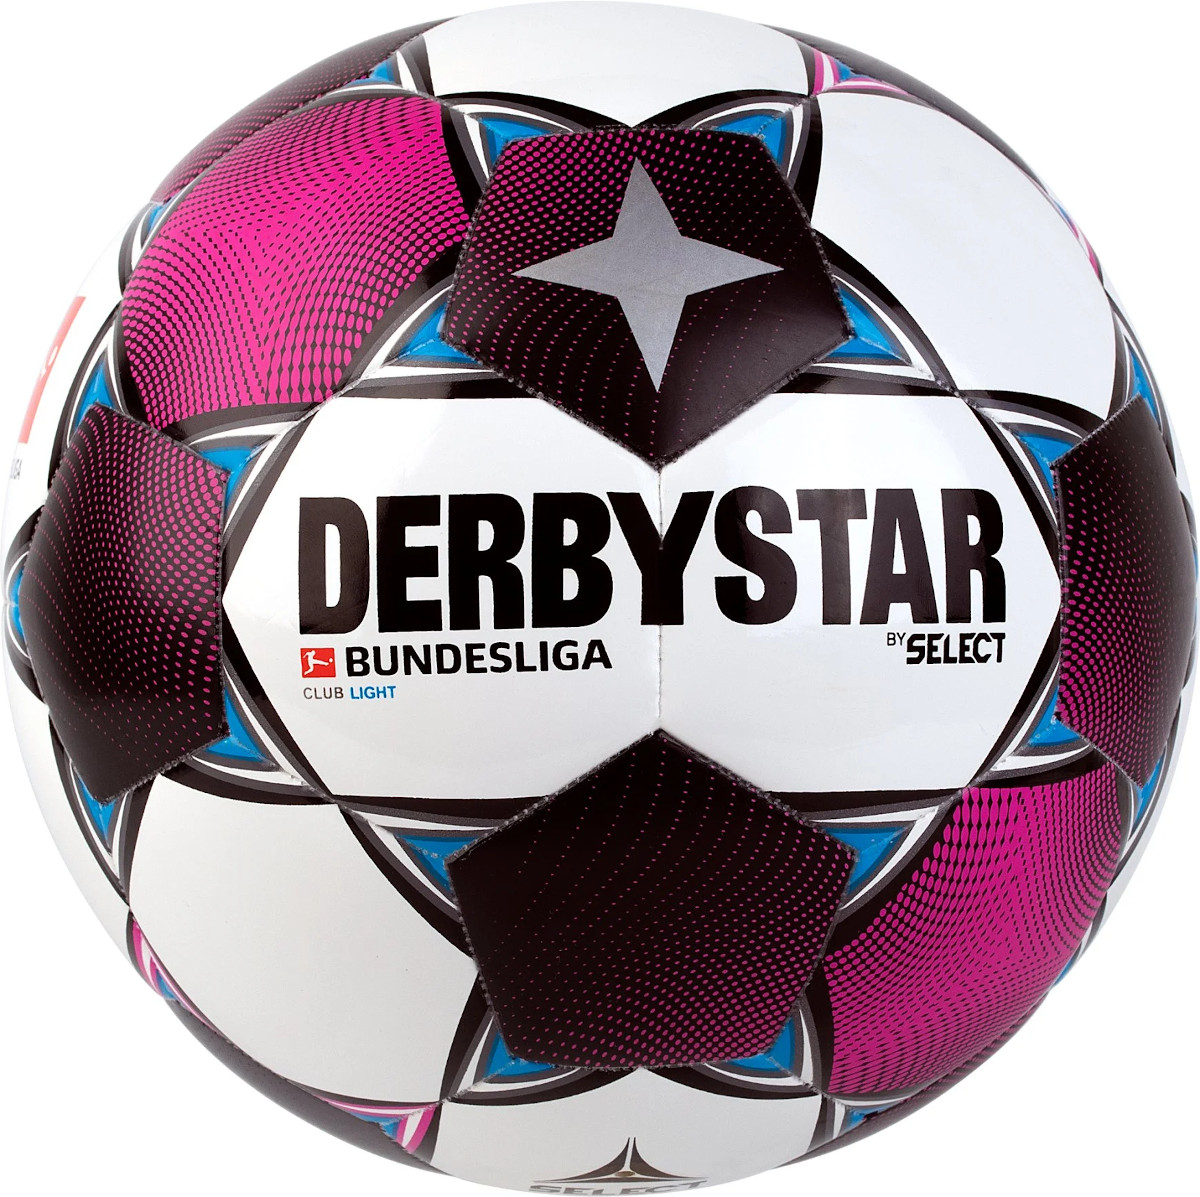 Ballon Derbystar Bundesliga Club Light 350g training ball